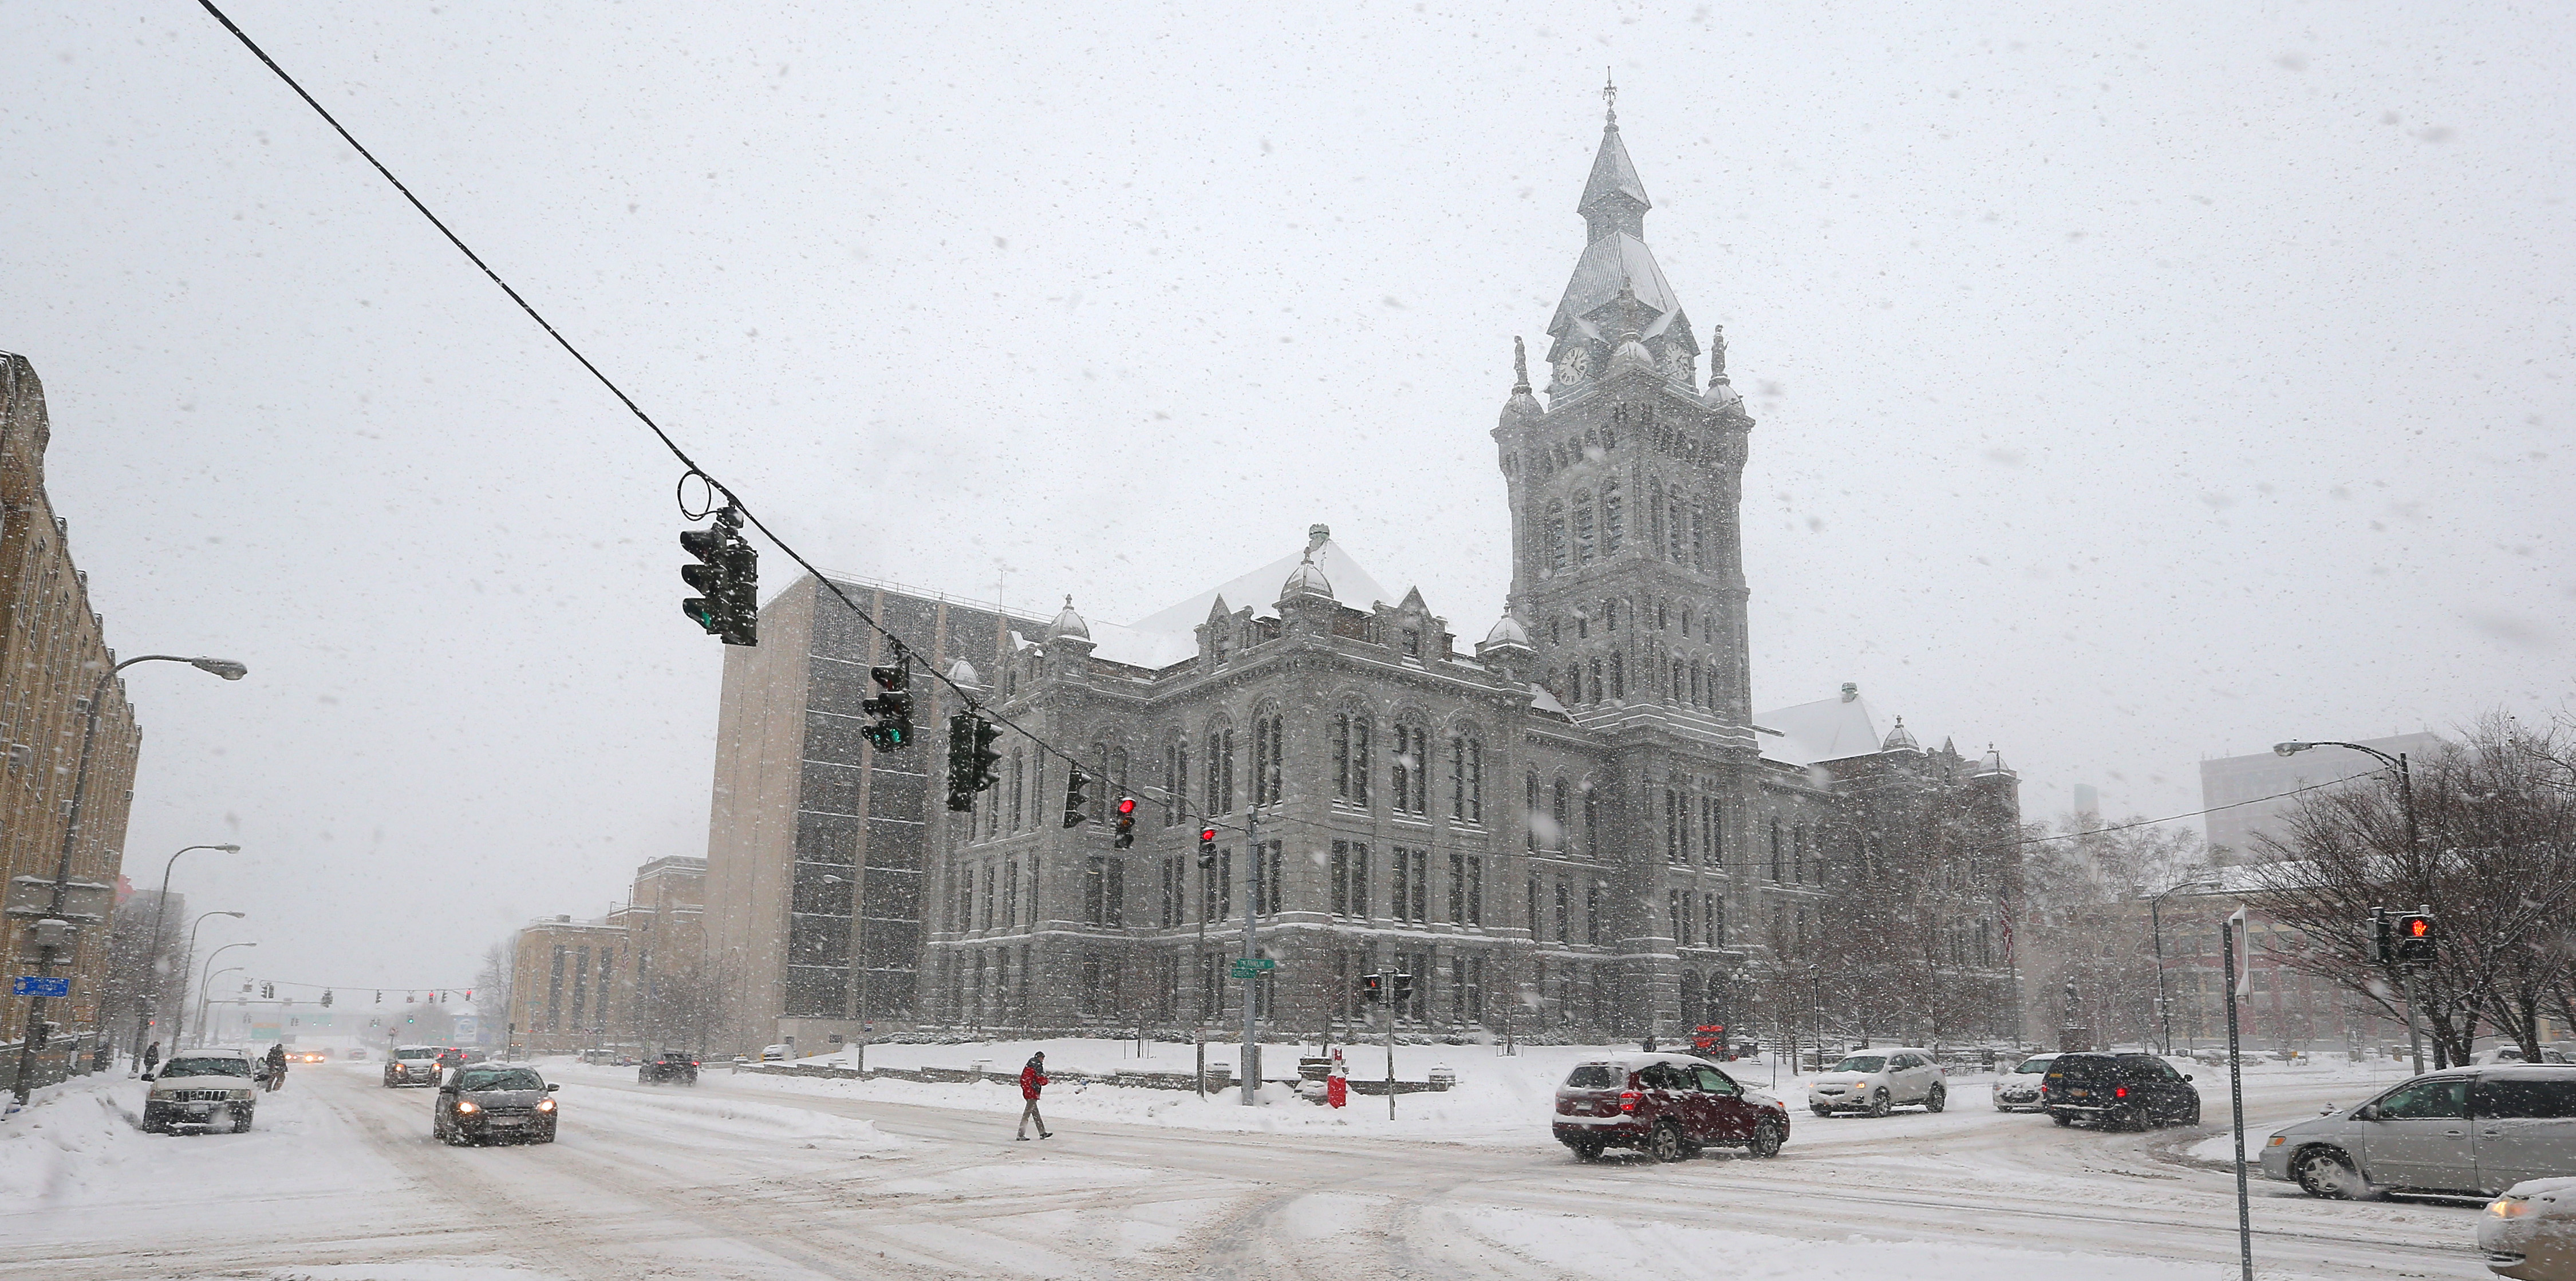 Freezing rain could turn into snow overnight as Saturday's warmer temperatures drop back below the freezing point. (John Hickey/News file photo)